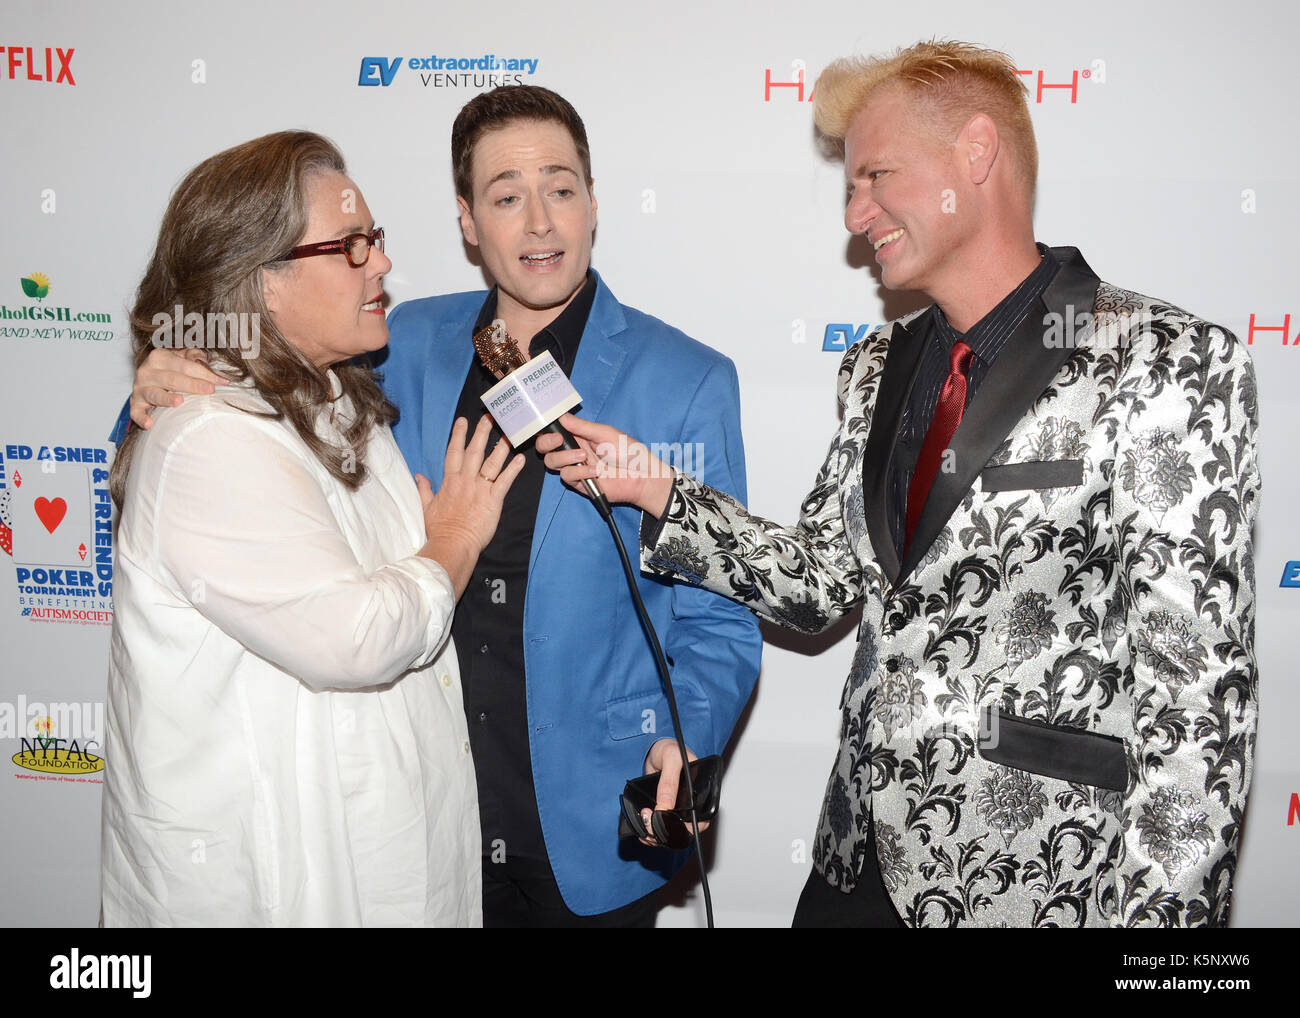 Randy Rainbow,Rosie O'Donnell Chris Valentine attends Ed Asner Friends Celebrity Poker Tournament Benefiting Autism Stock Photo